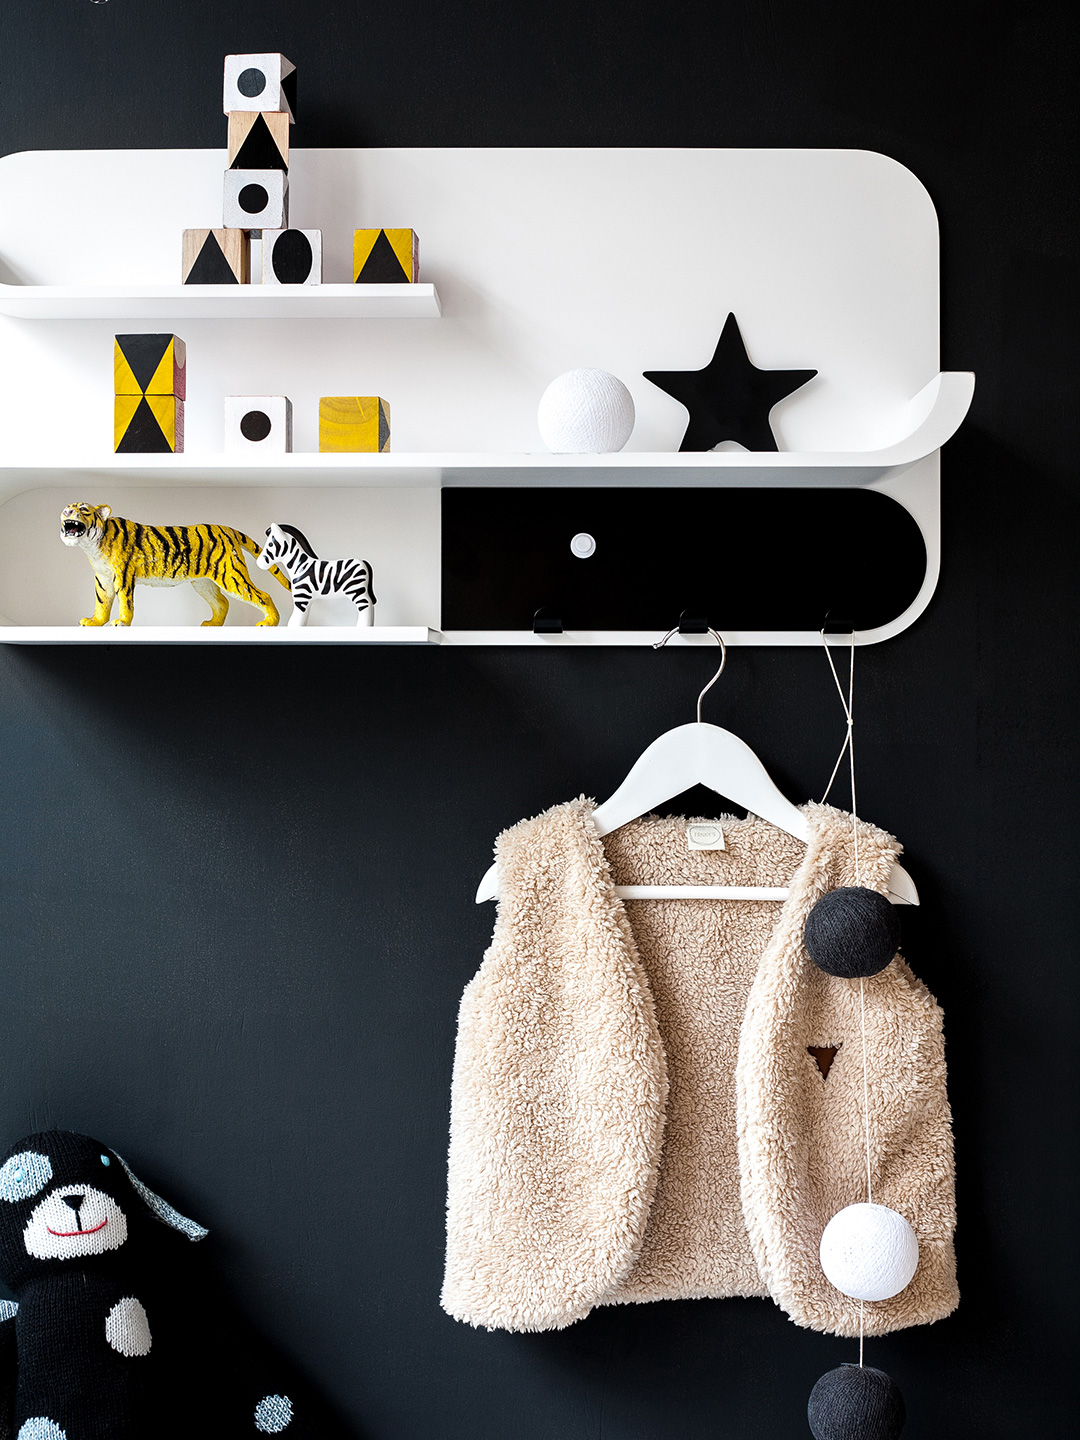 M Shelf - White / Black